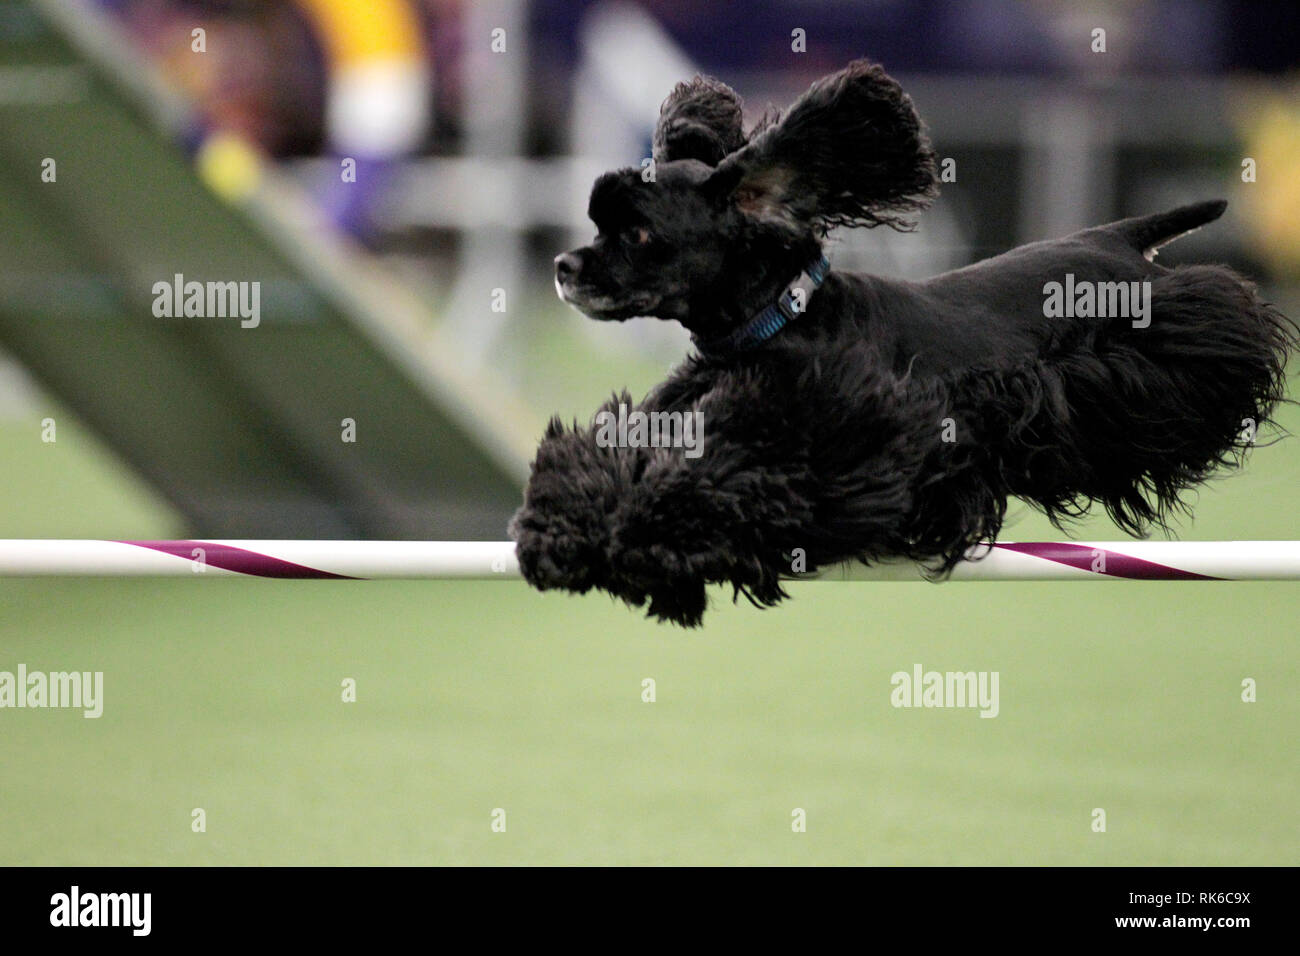 New York, USA. 09th Feb, 2019. Westminster Dog Show - Cody, a Cocker Spaniel, competing in the preliminaries of the Westminster Kennel Club's Master's Agility Championship. Credit: Adam Stoltman/Alamy Live News Stock Photo